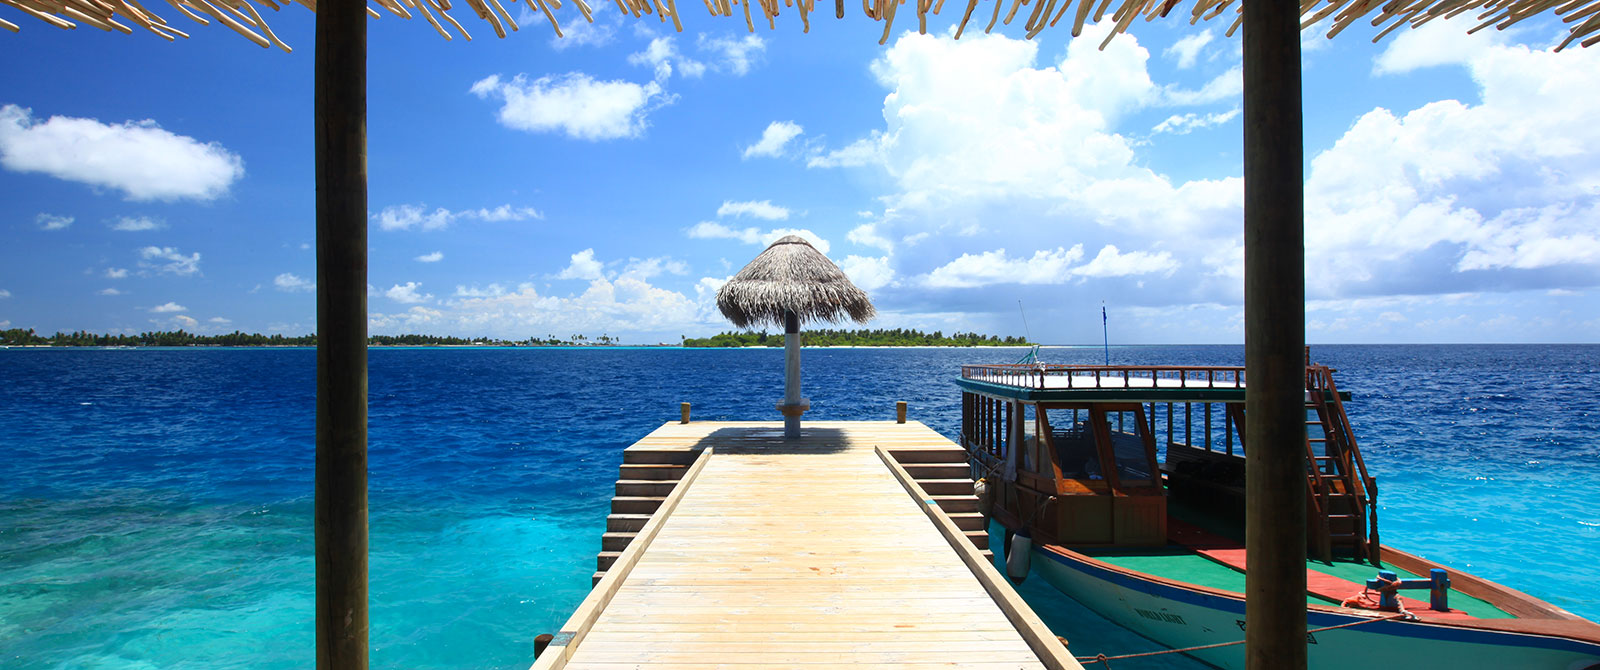 Six Senses Laamu - Trip to Maldives: Overwater Villa Vacation